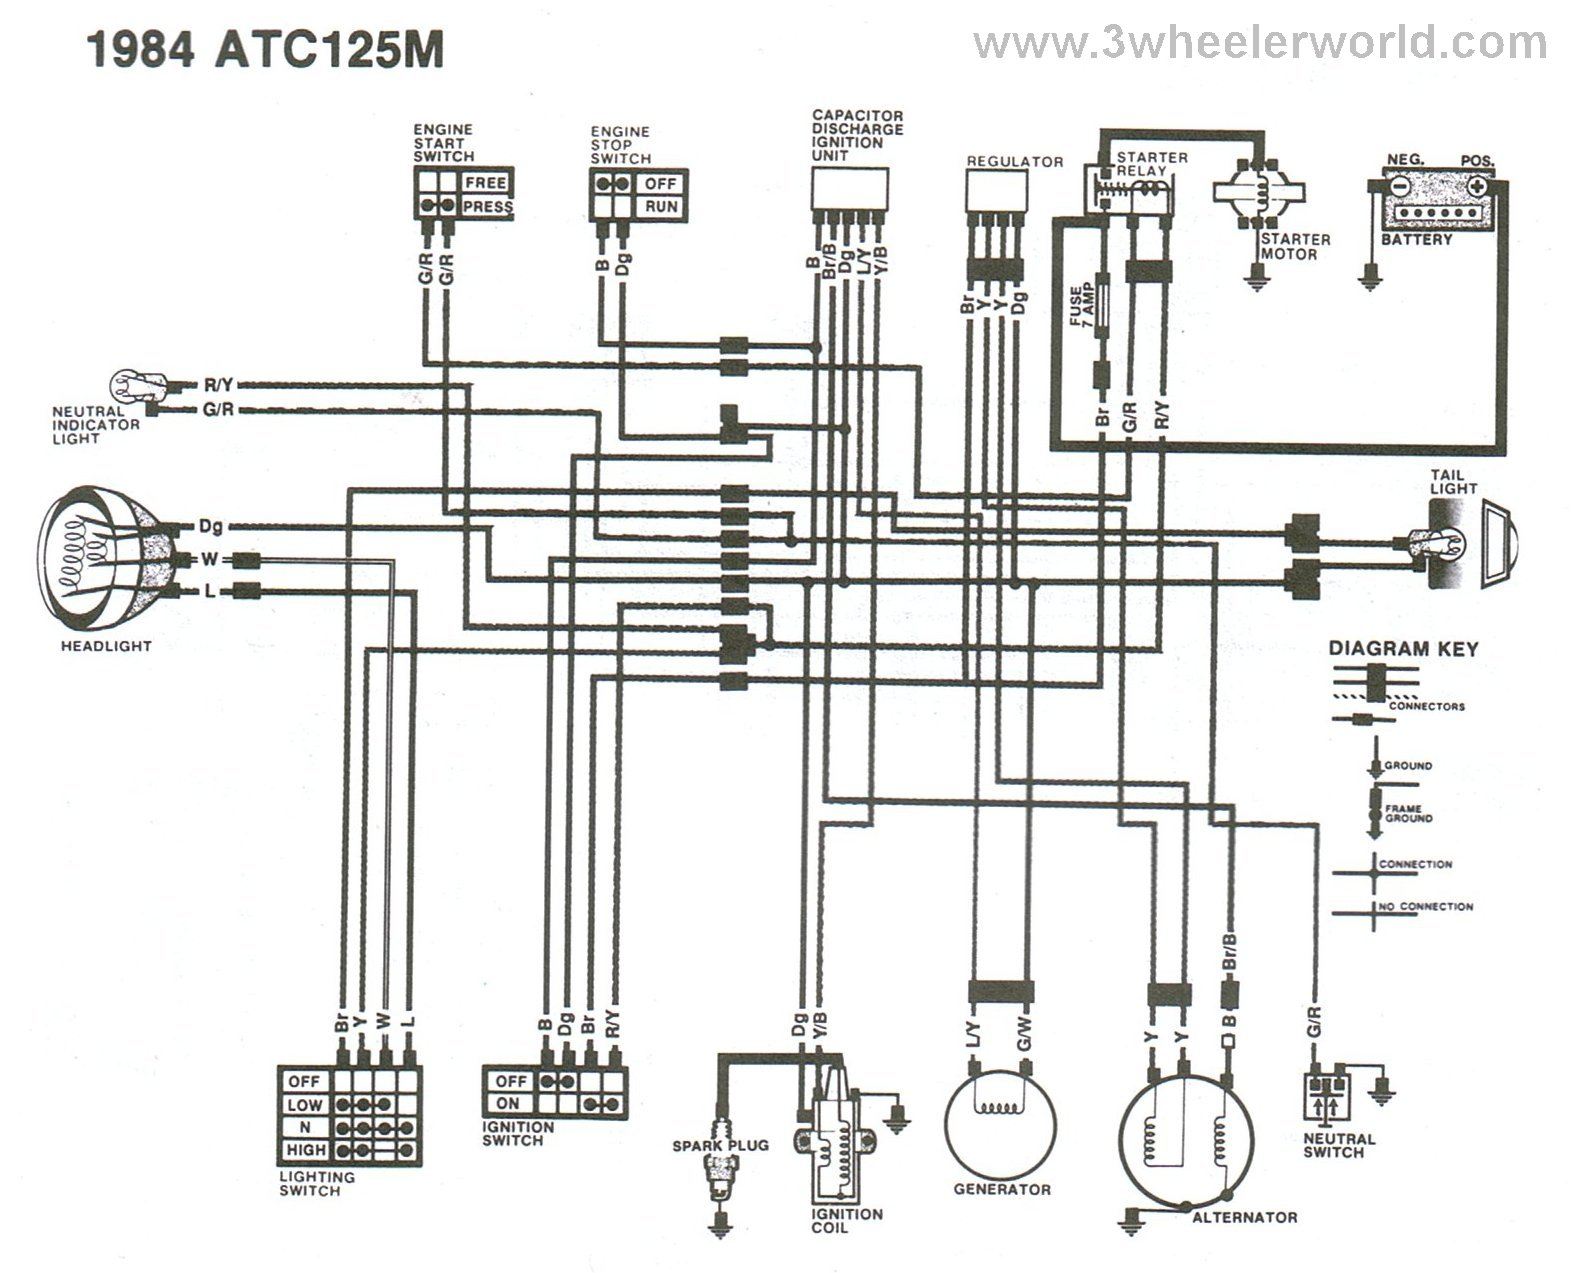 Gy6 5 Wire Rectifier Wiring Diagram on gas scooter wiring diagram